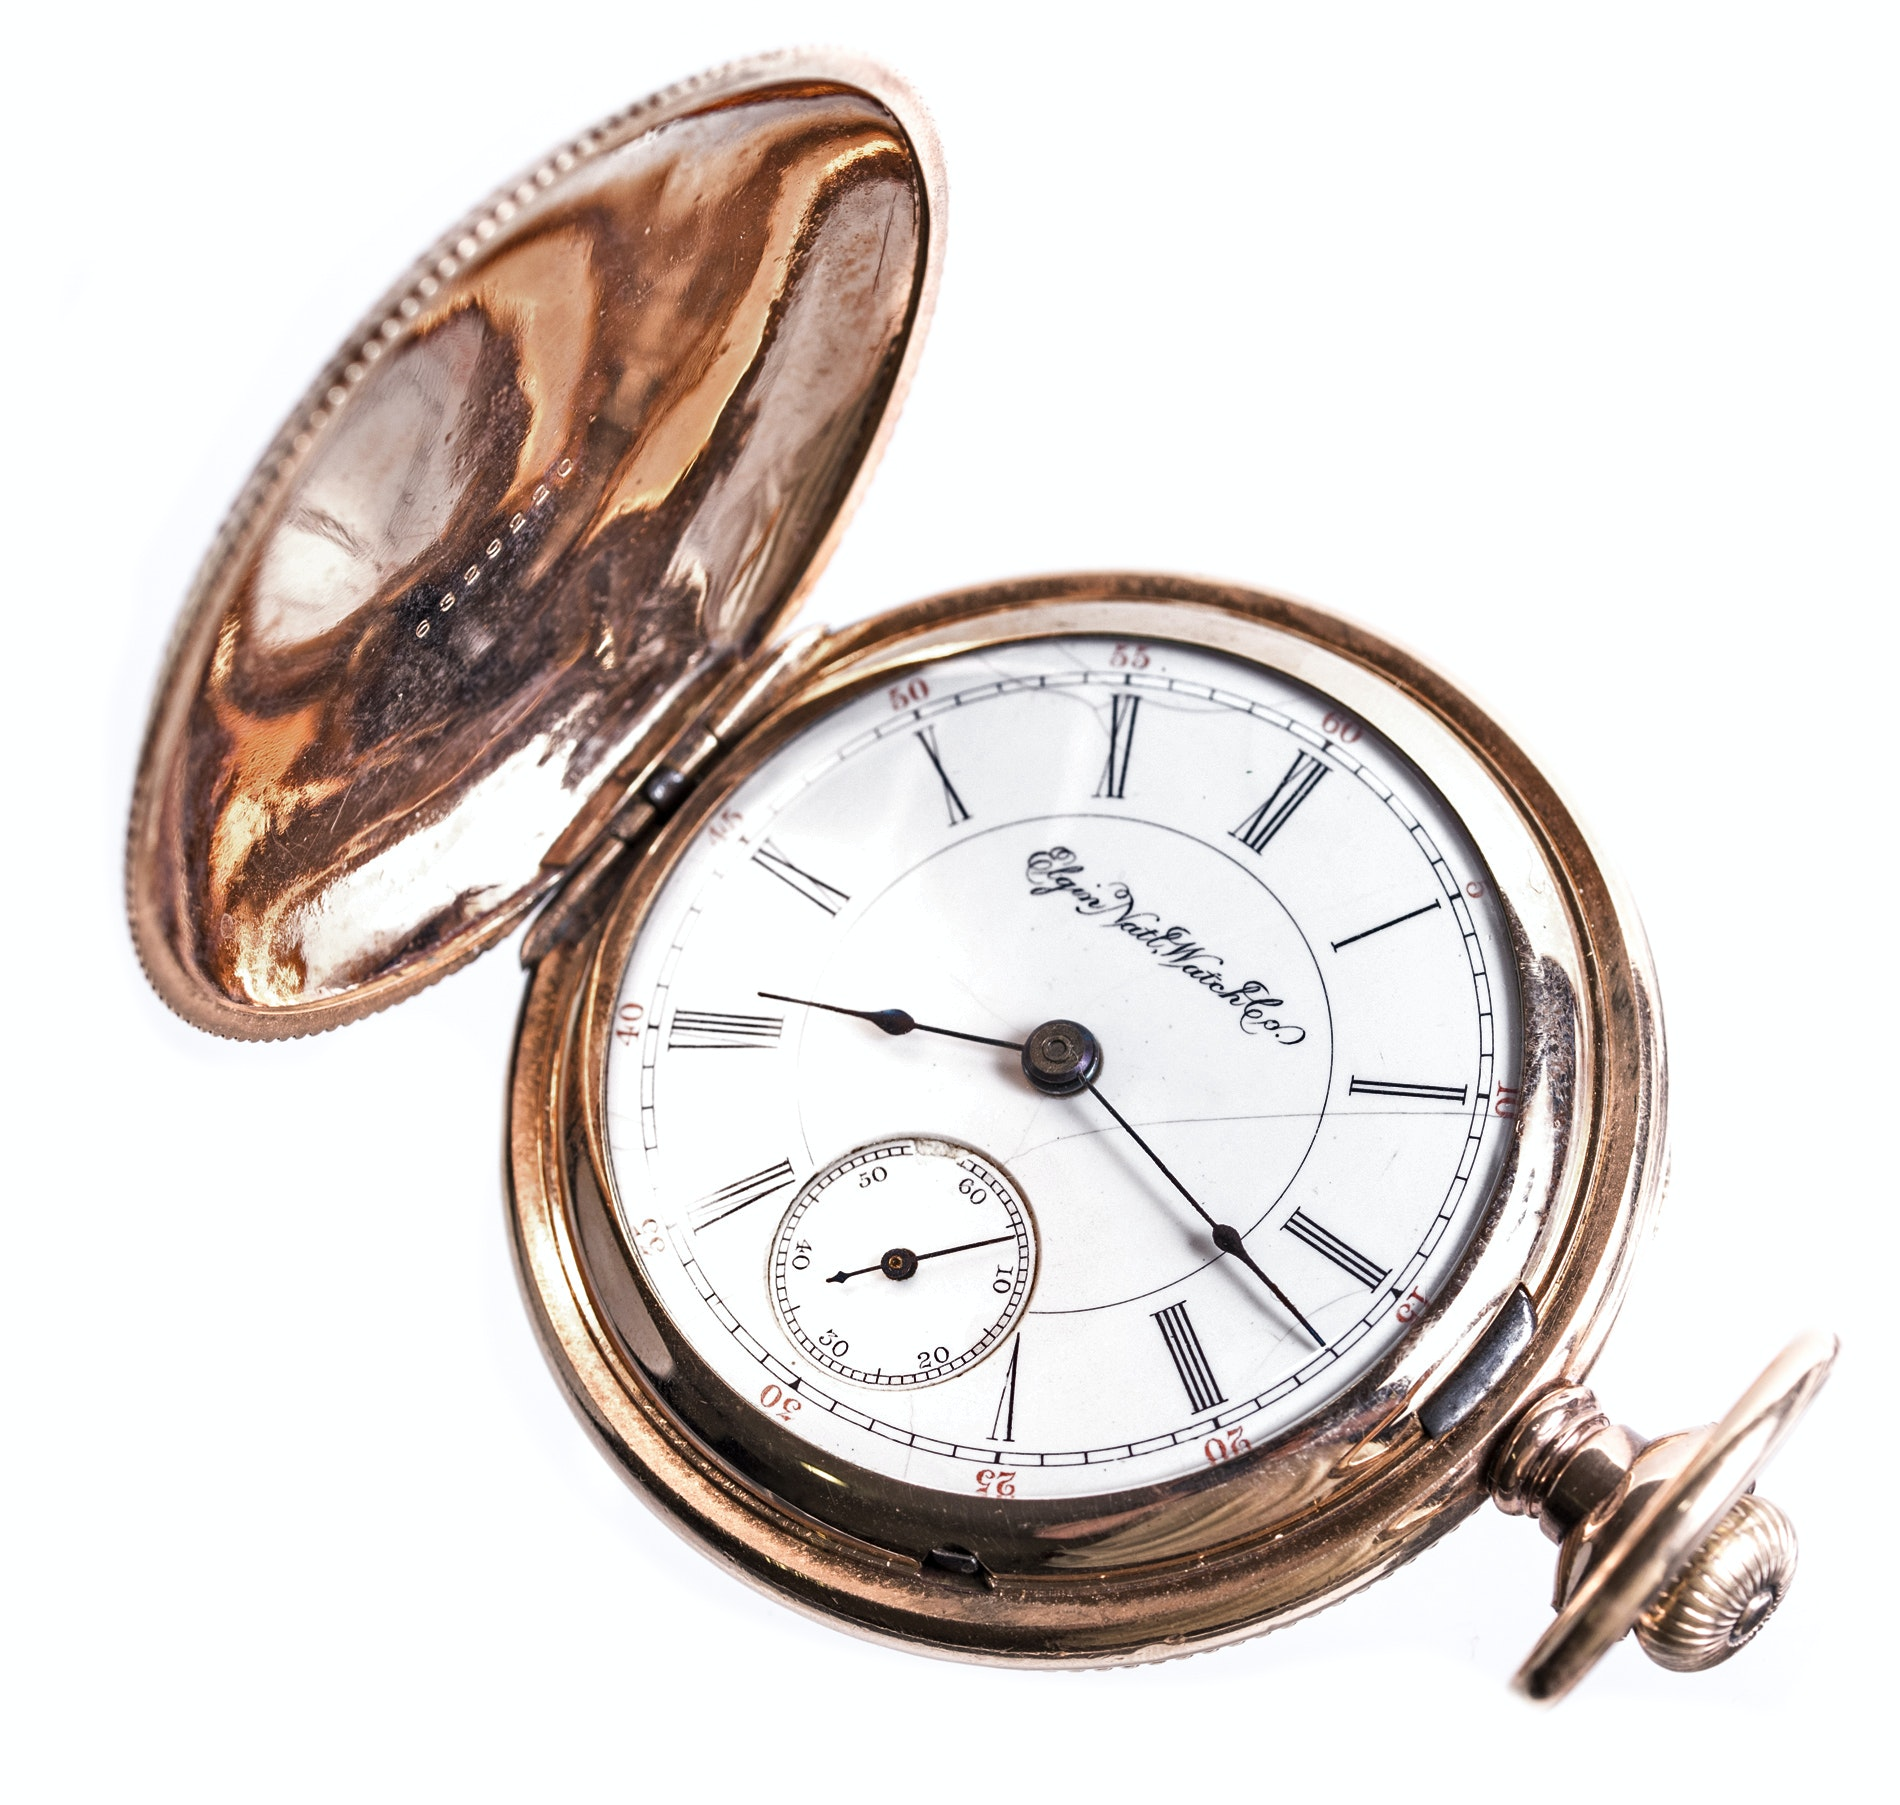 14K Yellow Plated Gold Elgin Pocket Watch